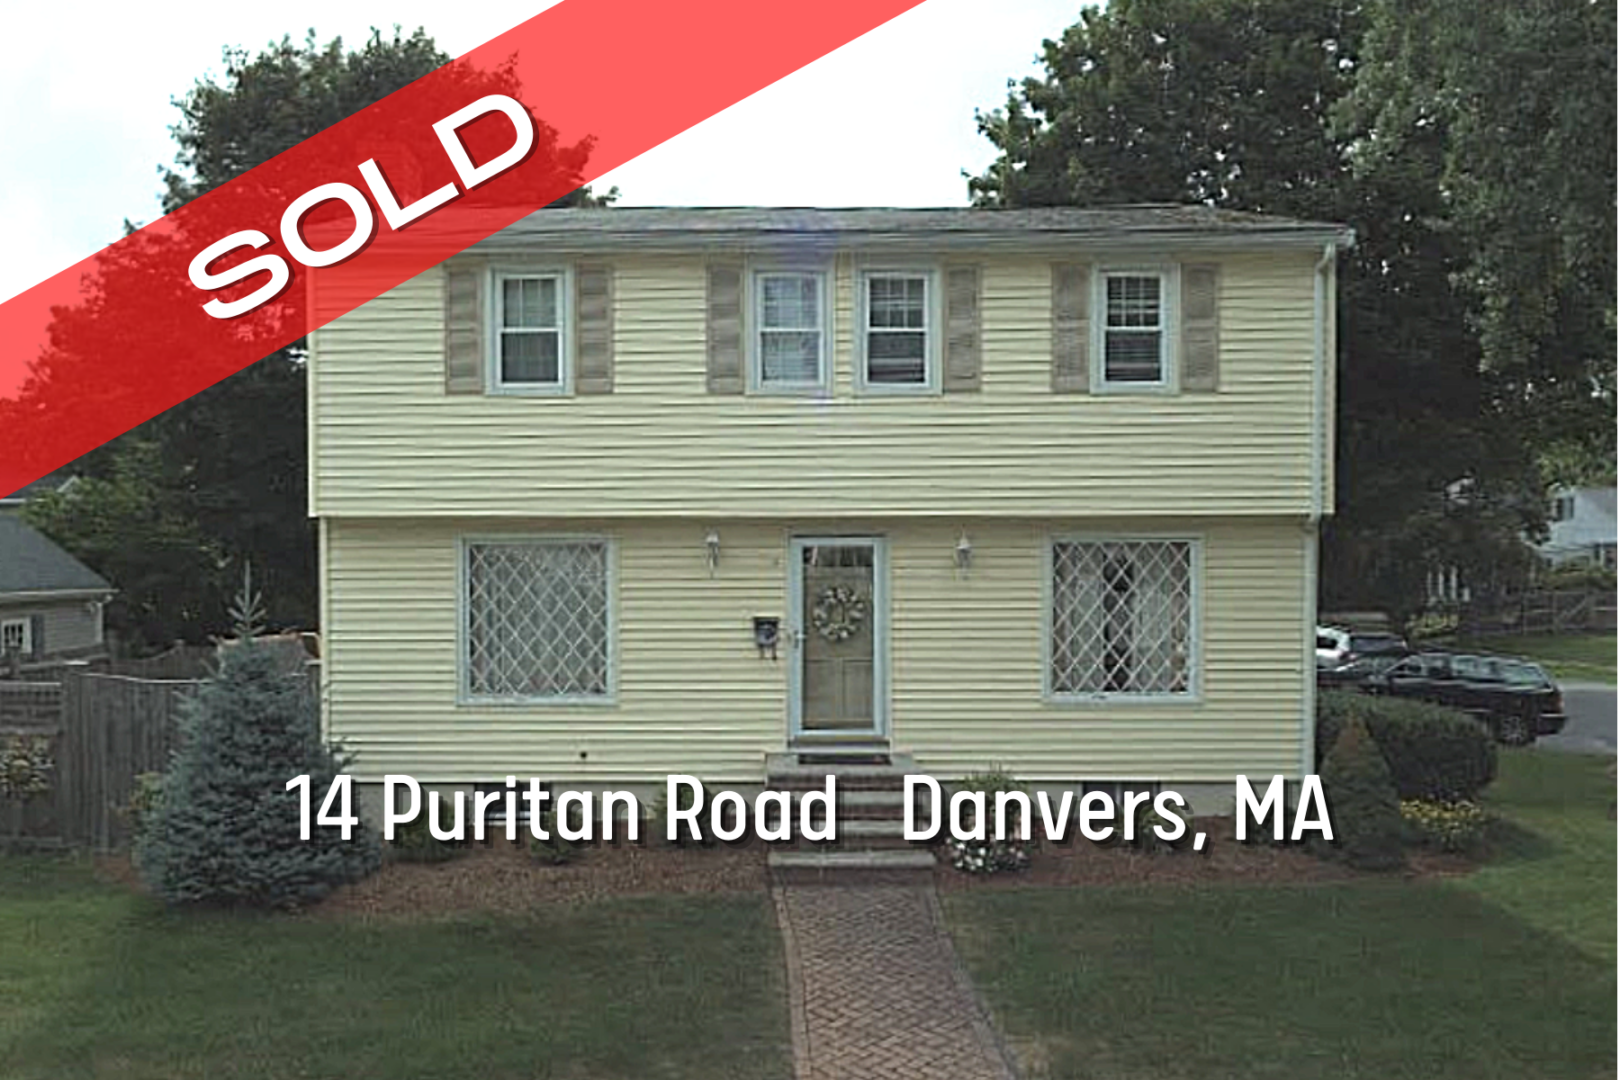 Sold Property in Danvers, MA